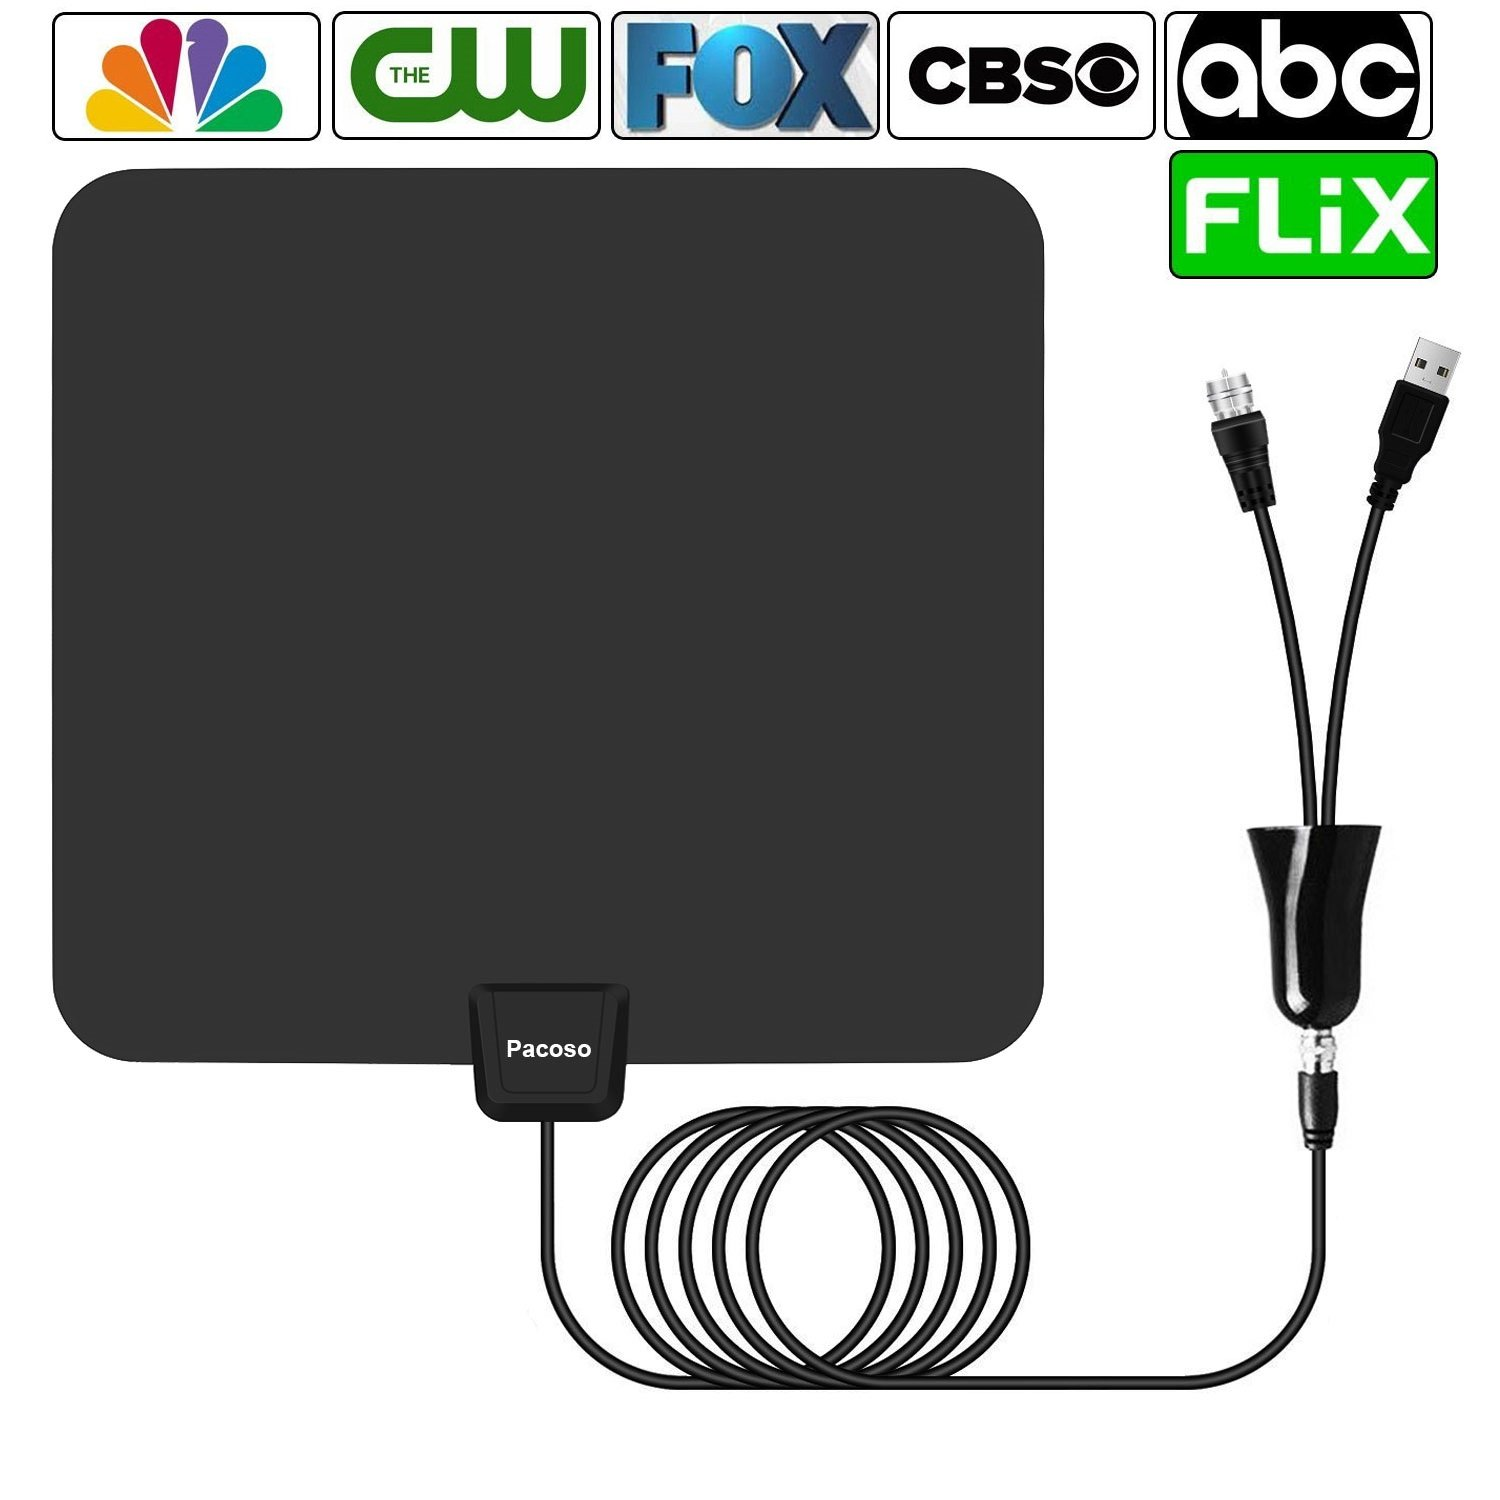 Indoor Amplified HDTV Antenna 65-80 Miles Range - Support 4K 1080p & All TV's for Indoor with HDTV Amplifier Signal Booster/Longer Coax Cable [2018 Newest]